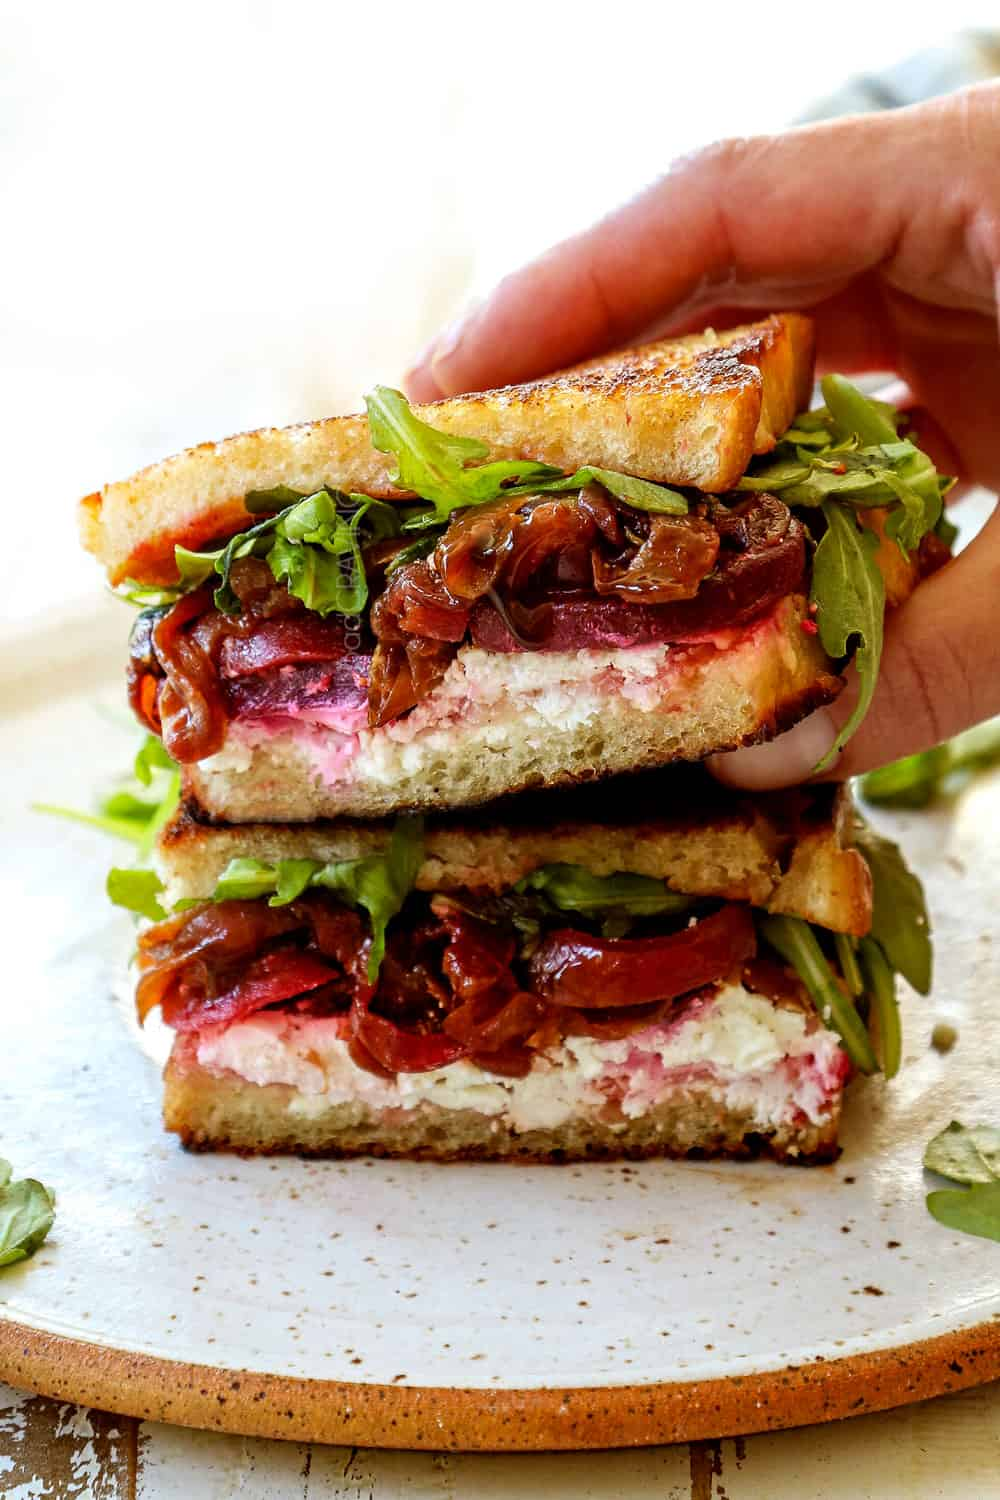 grilled cheese sandwich recipe stacked on top of each other with goat cheese, caramelized onions and arugula